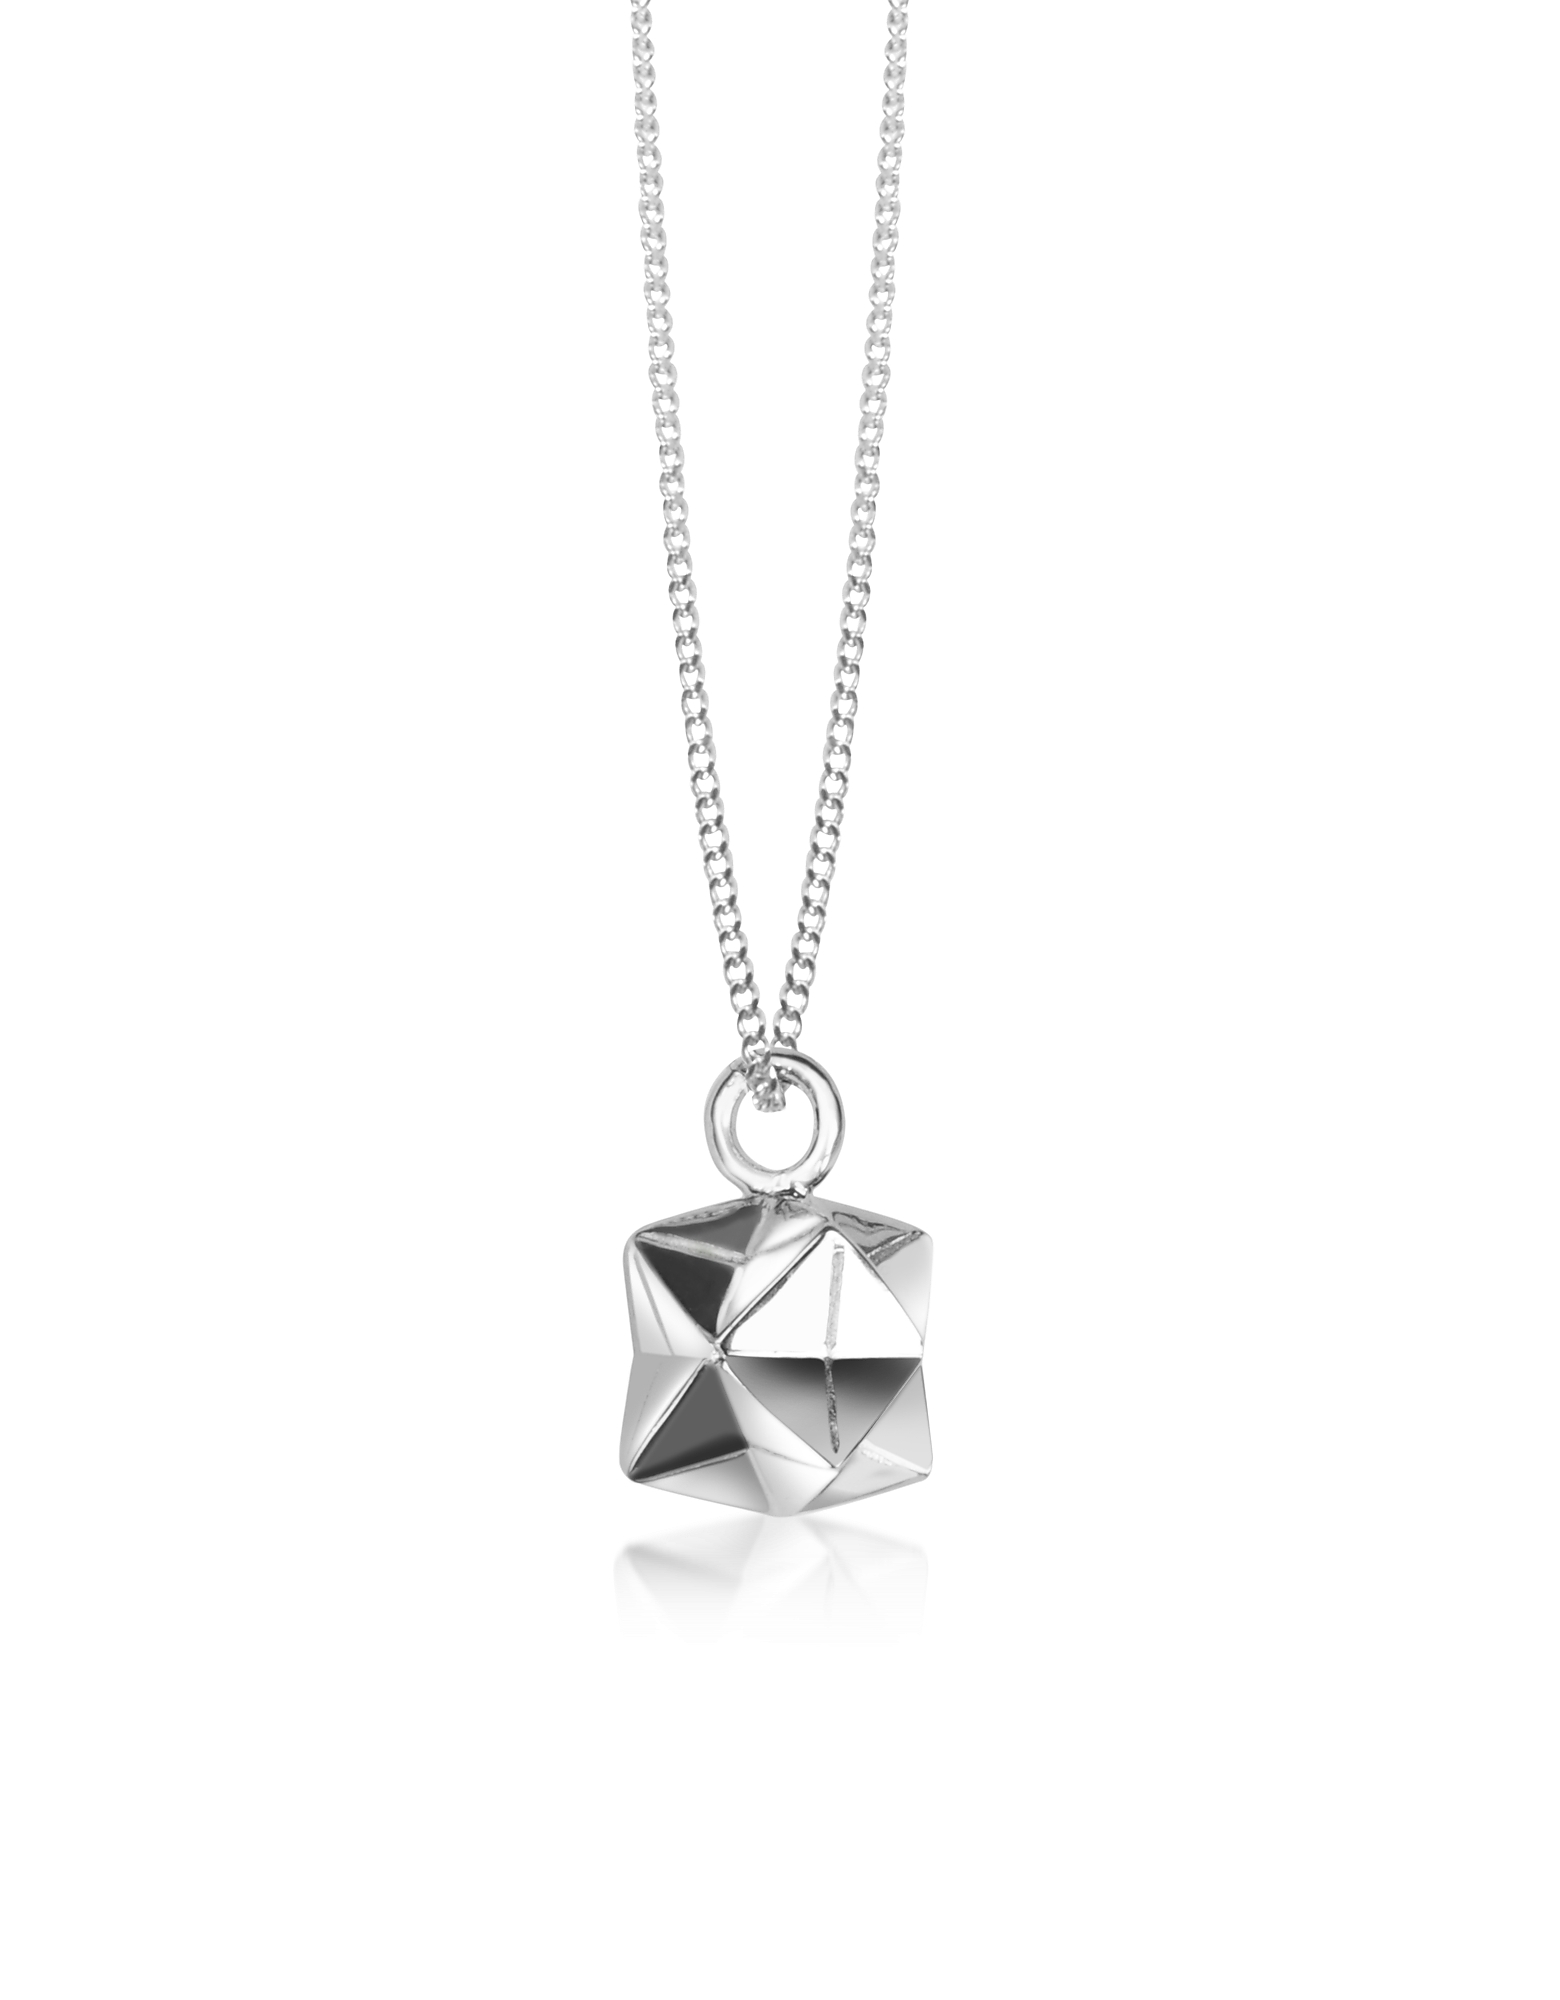 Origami Necklaces, Sterling Silver Magic Ball Pendant Necklace